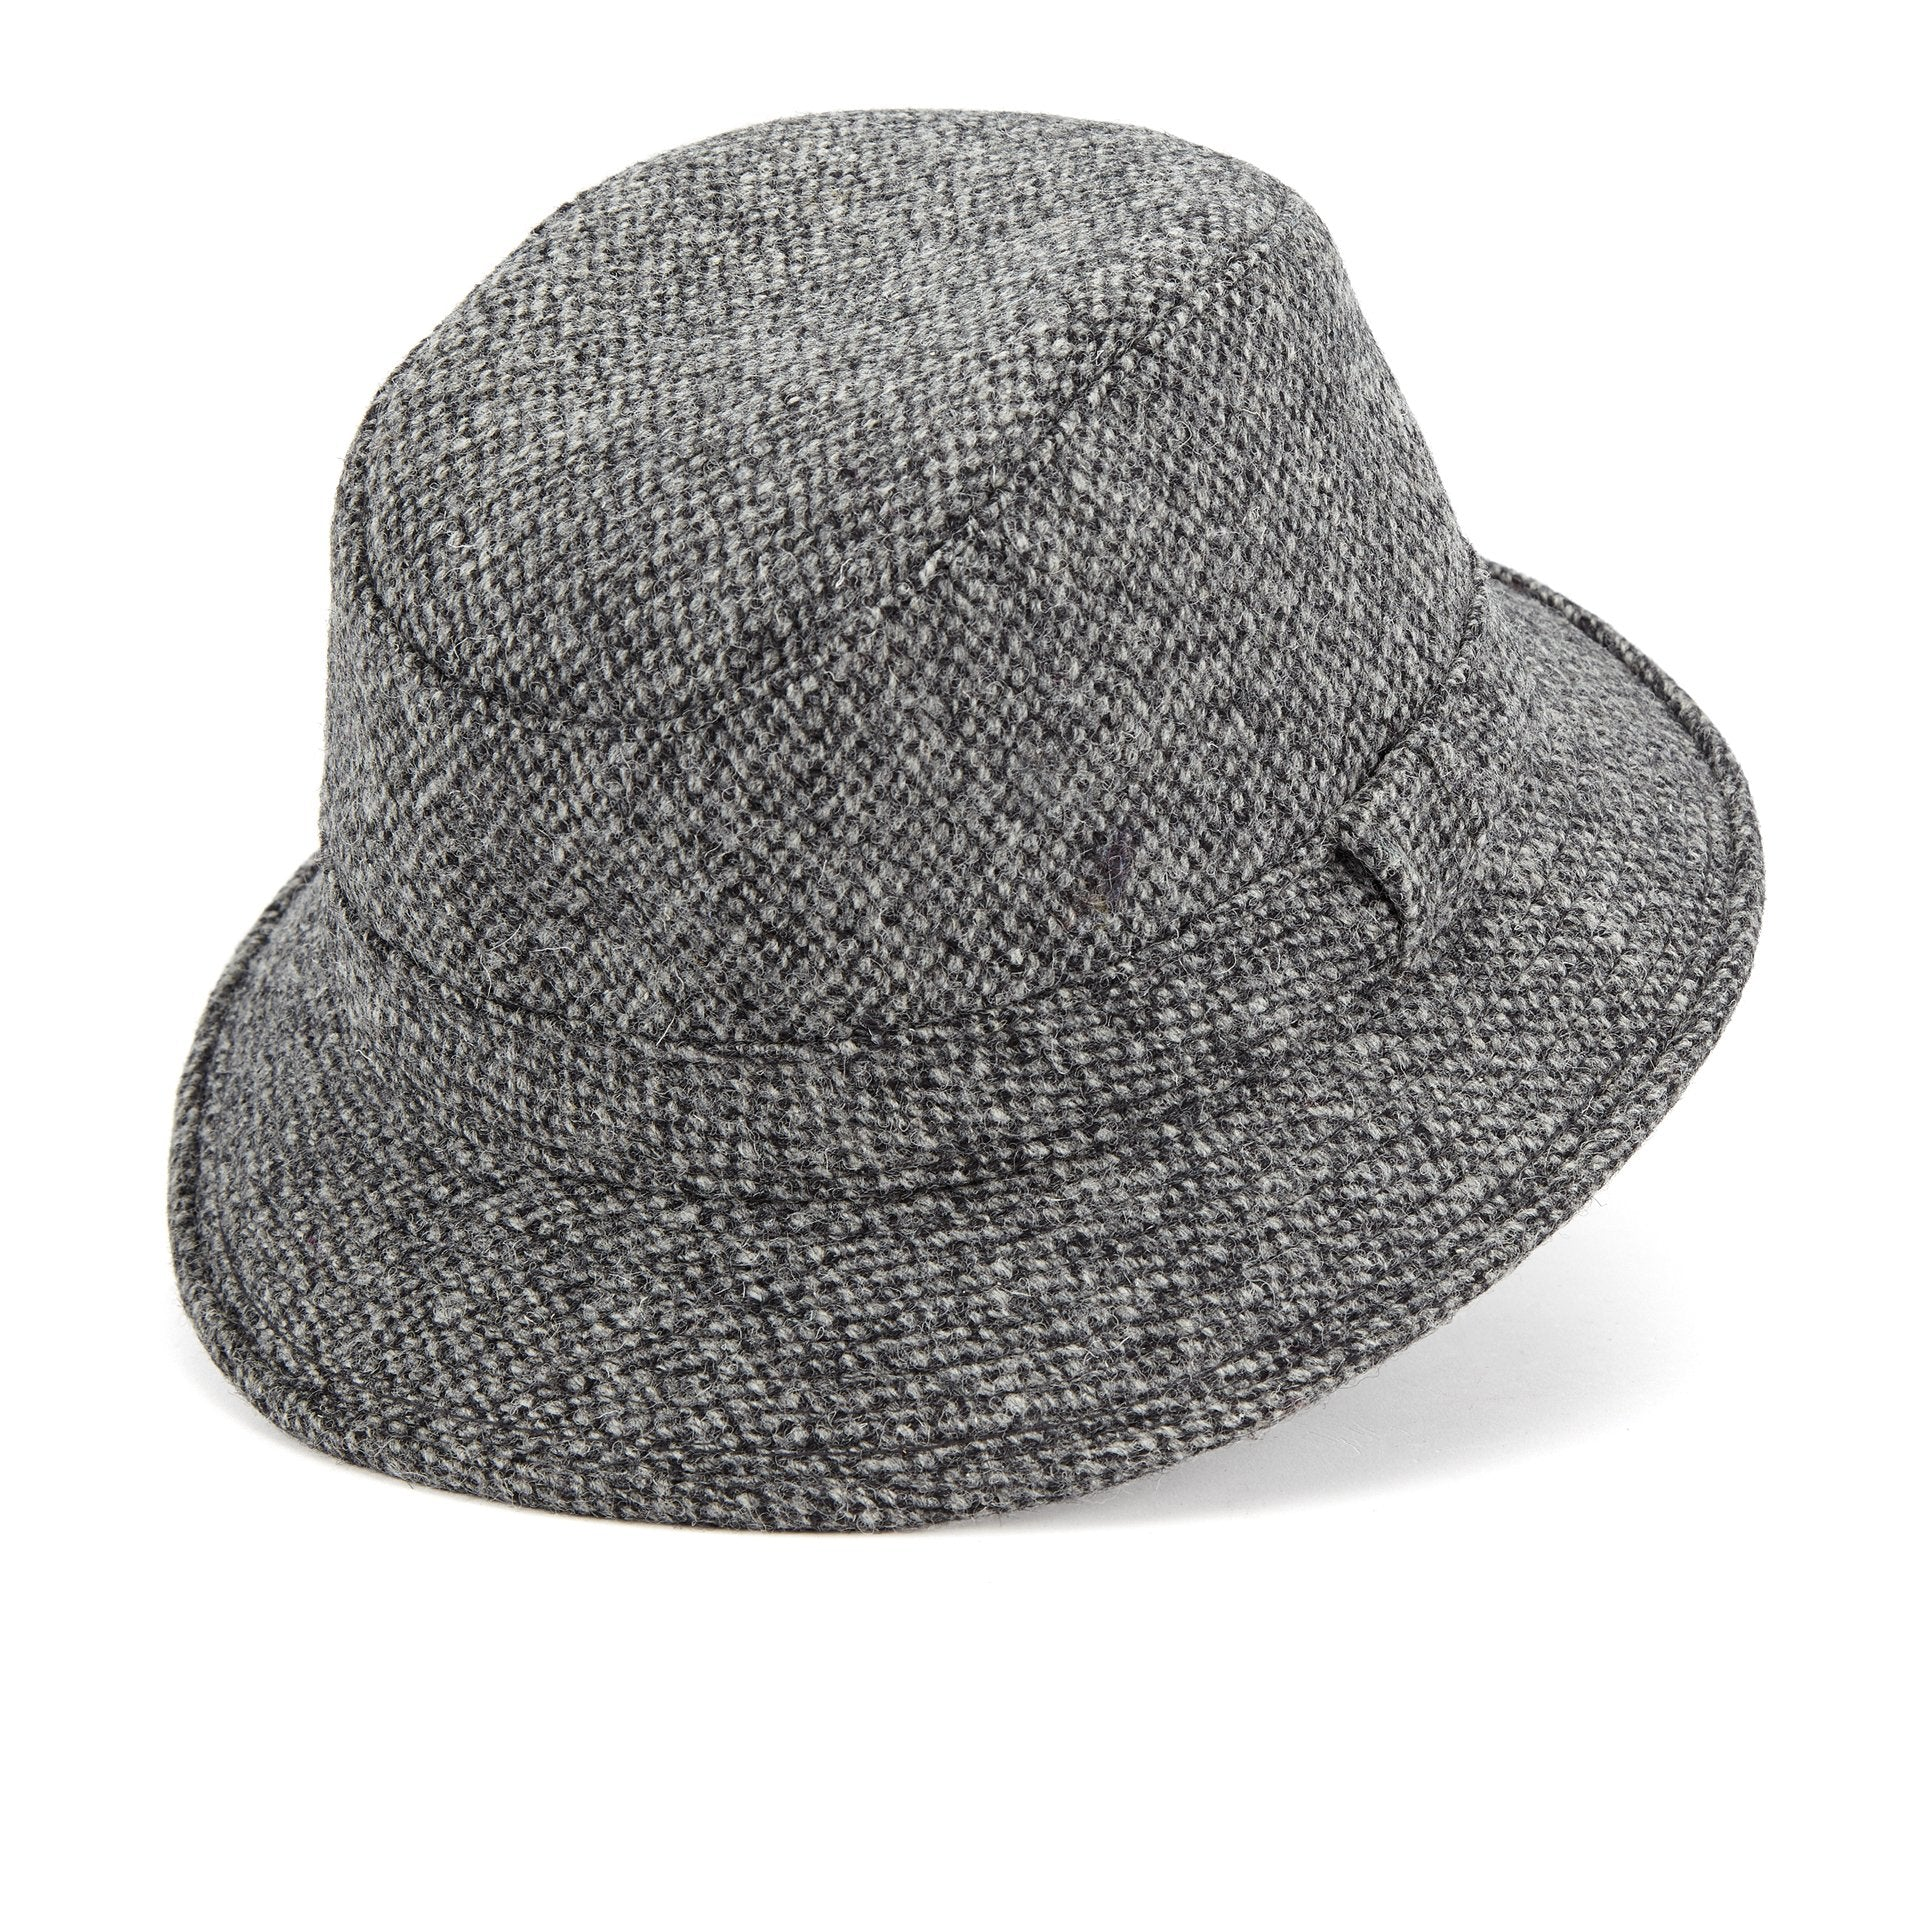 Lock x Harris Tweed Grouse rollable hat - Men's Bucket hats - Lock & Co. Hatters London UK